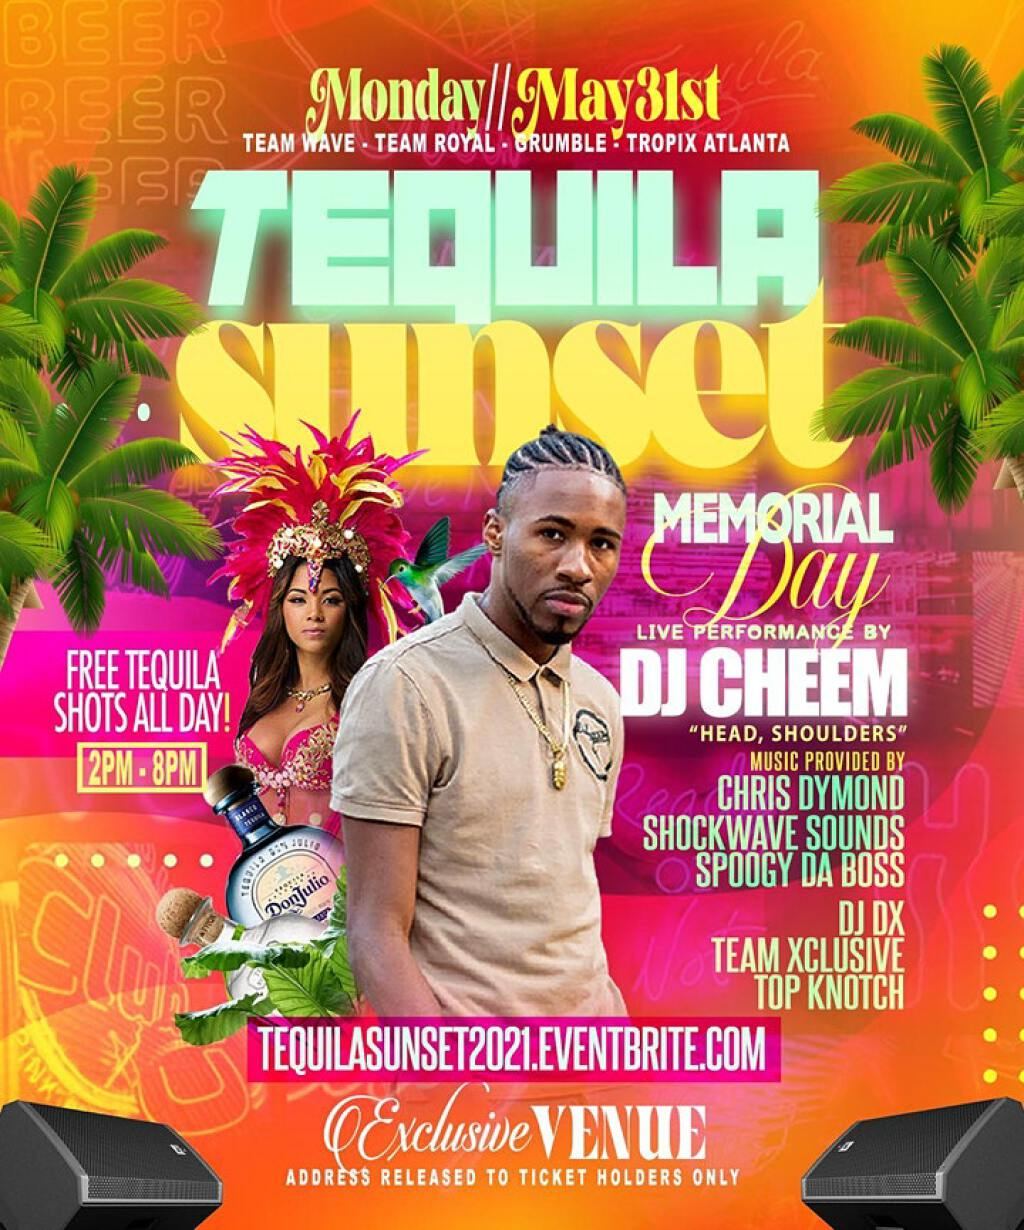 Tequila Sunset 2021 flyer or graphic.